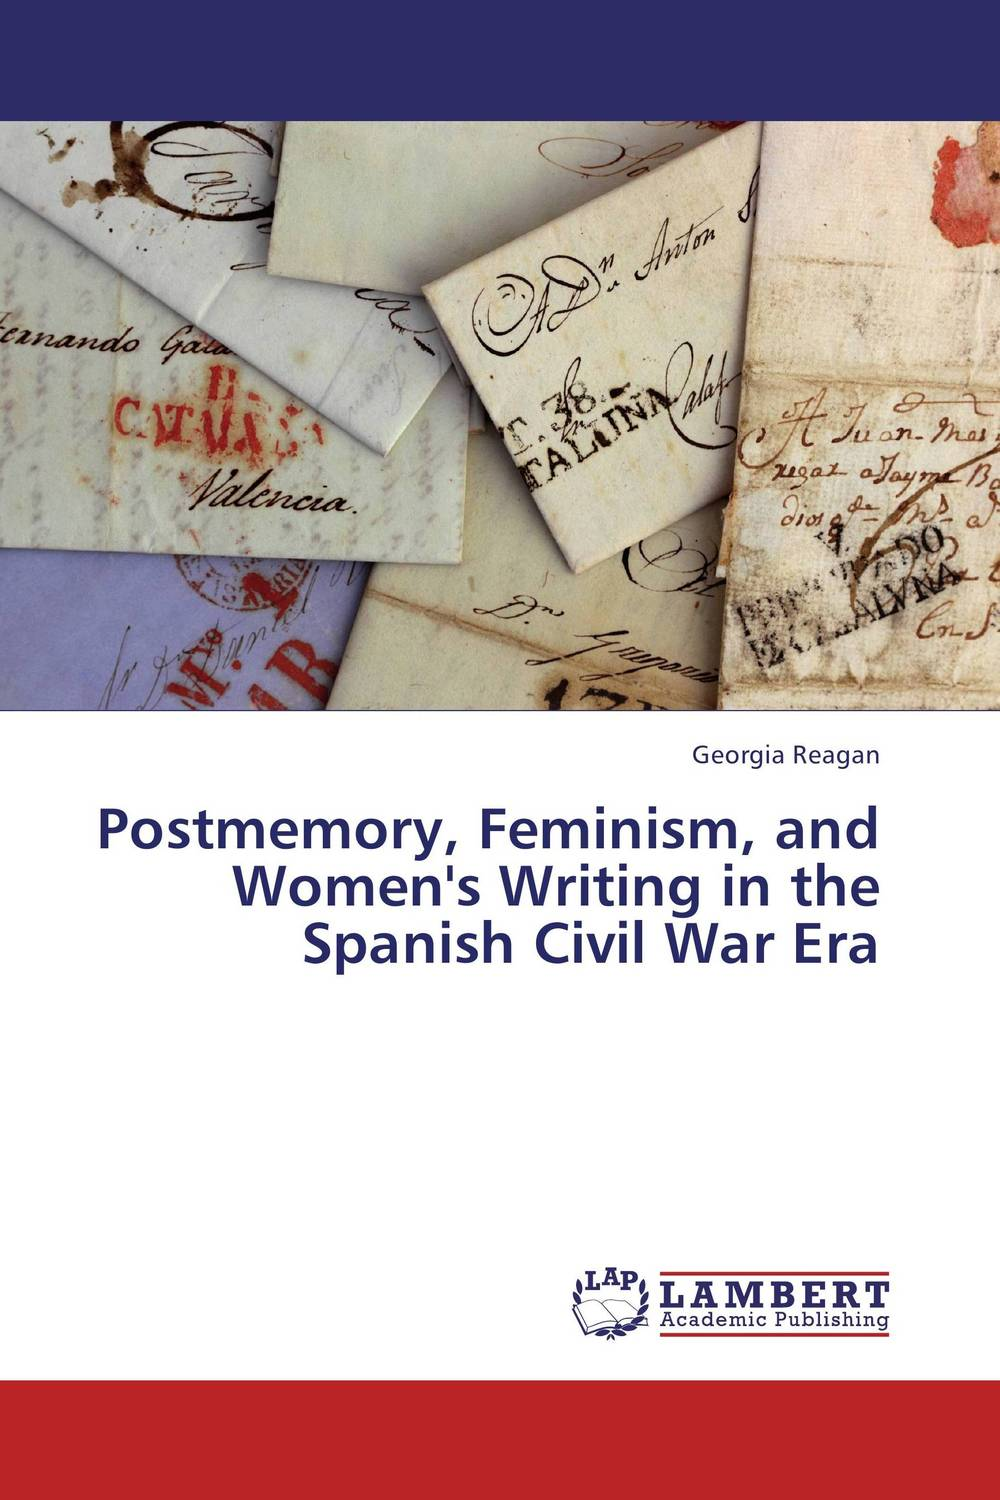 Postmemory, Feminism, and Women's Writing in the Spanish Civil War Era thomas hugh the spanish civil war